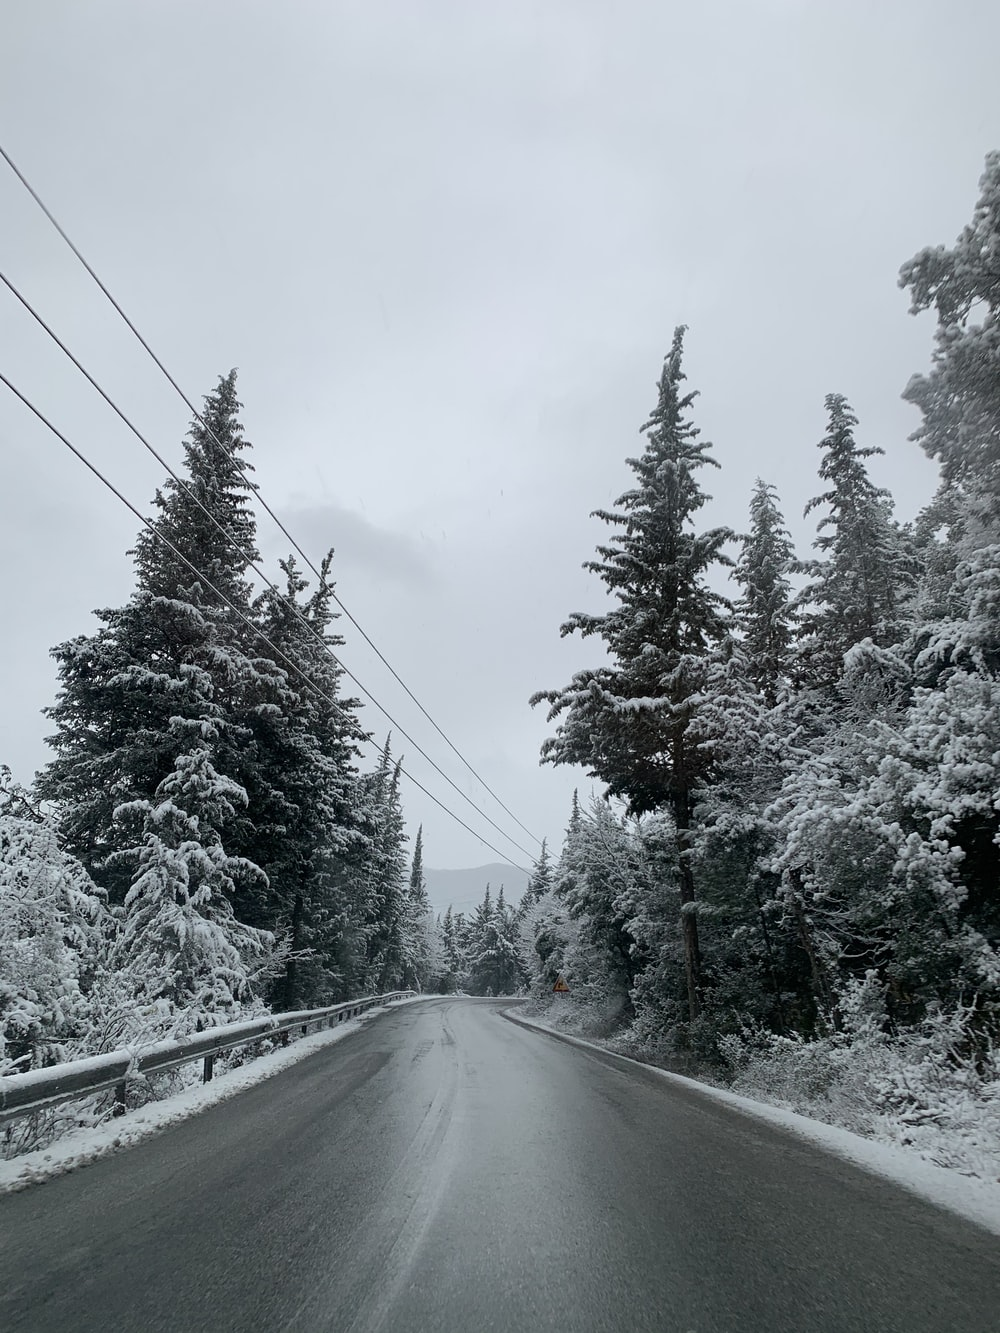 snow covered trees and road during daytime